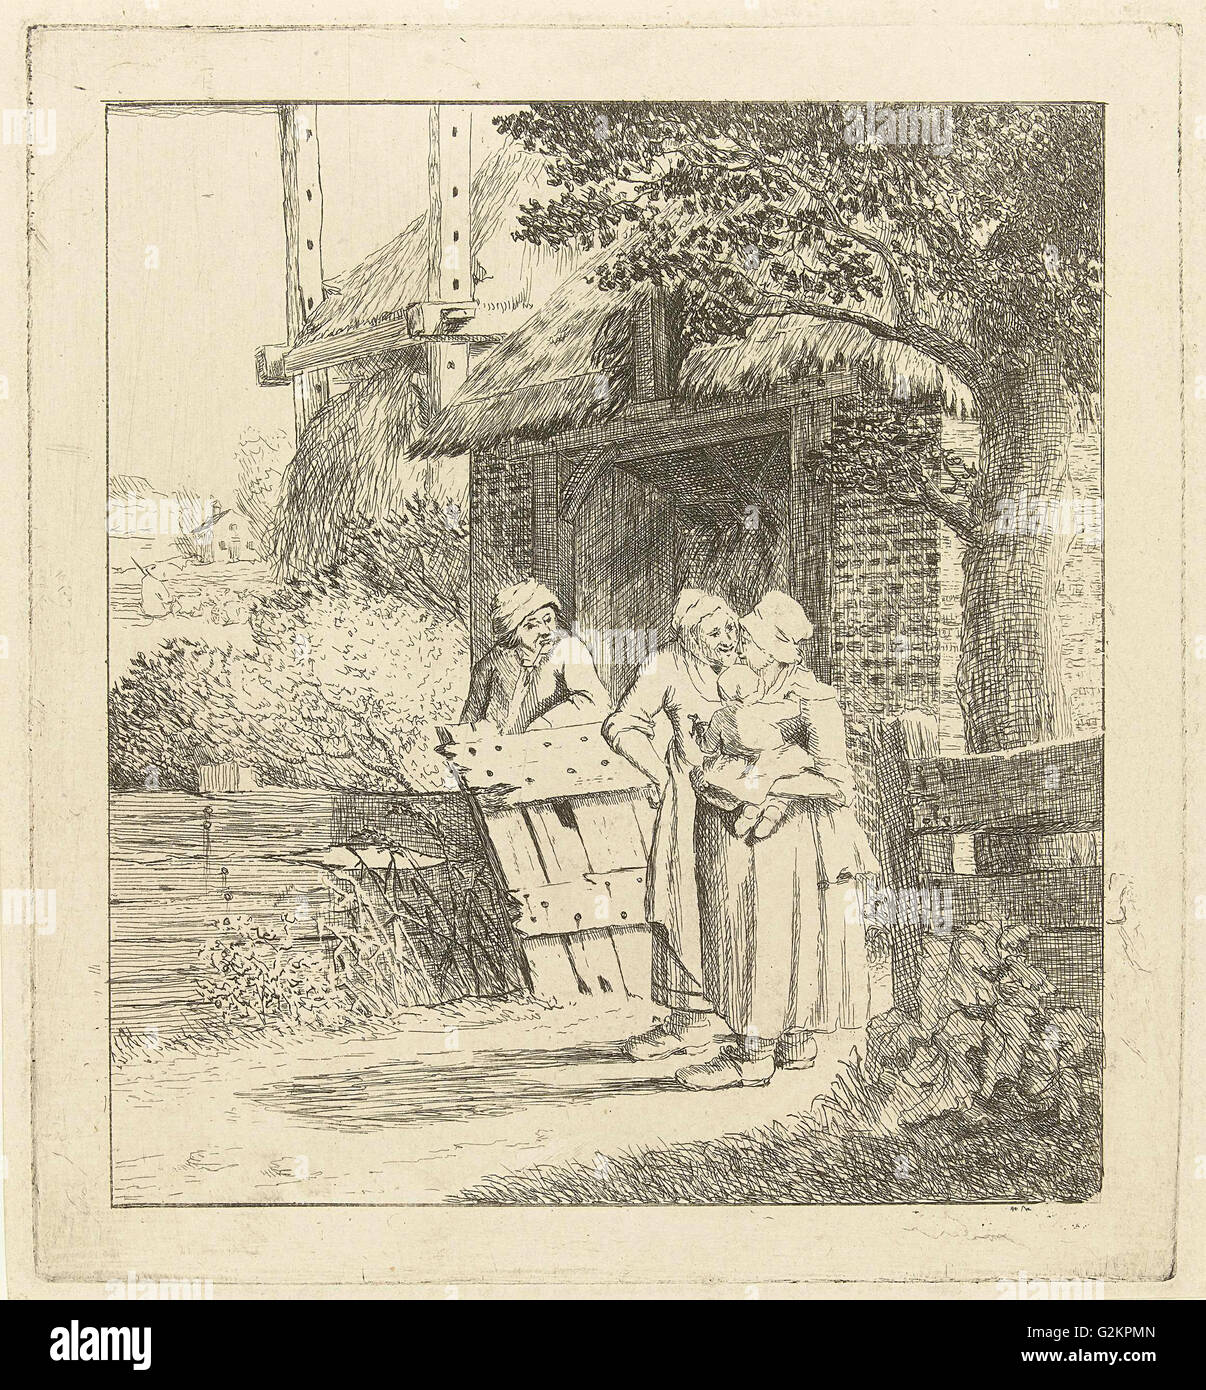 Two women and a man on a farm, print maker: Marie Lambertine Coclers, 1776 - 1815 - Stock Image